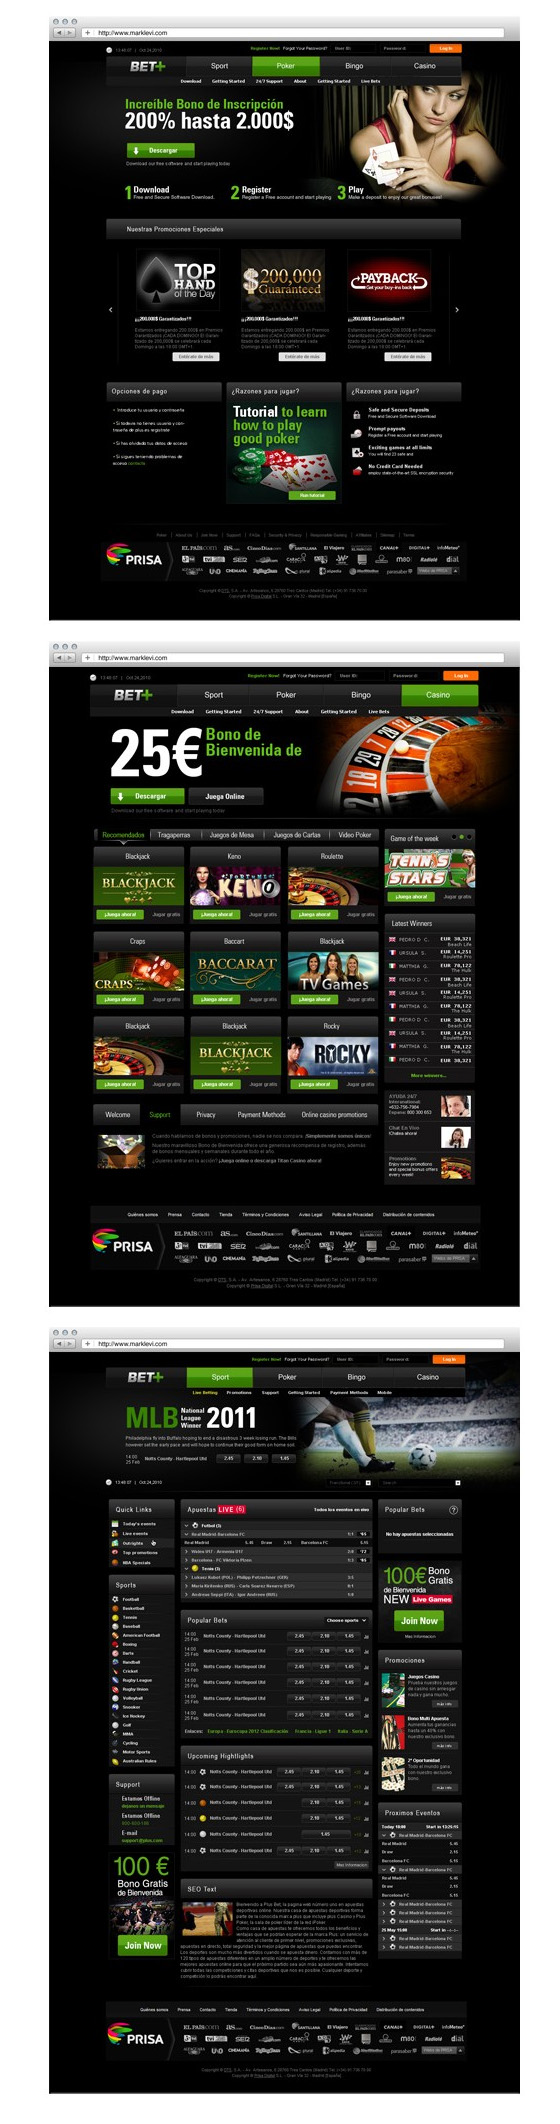 BET+ Web design and logo for BET+ betting platform